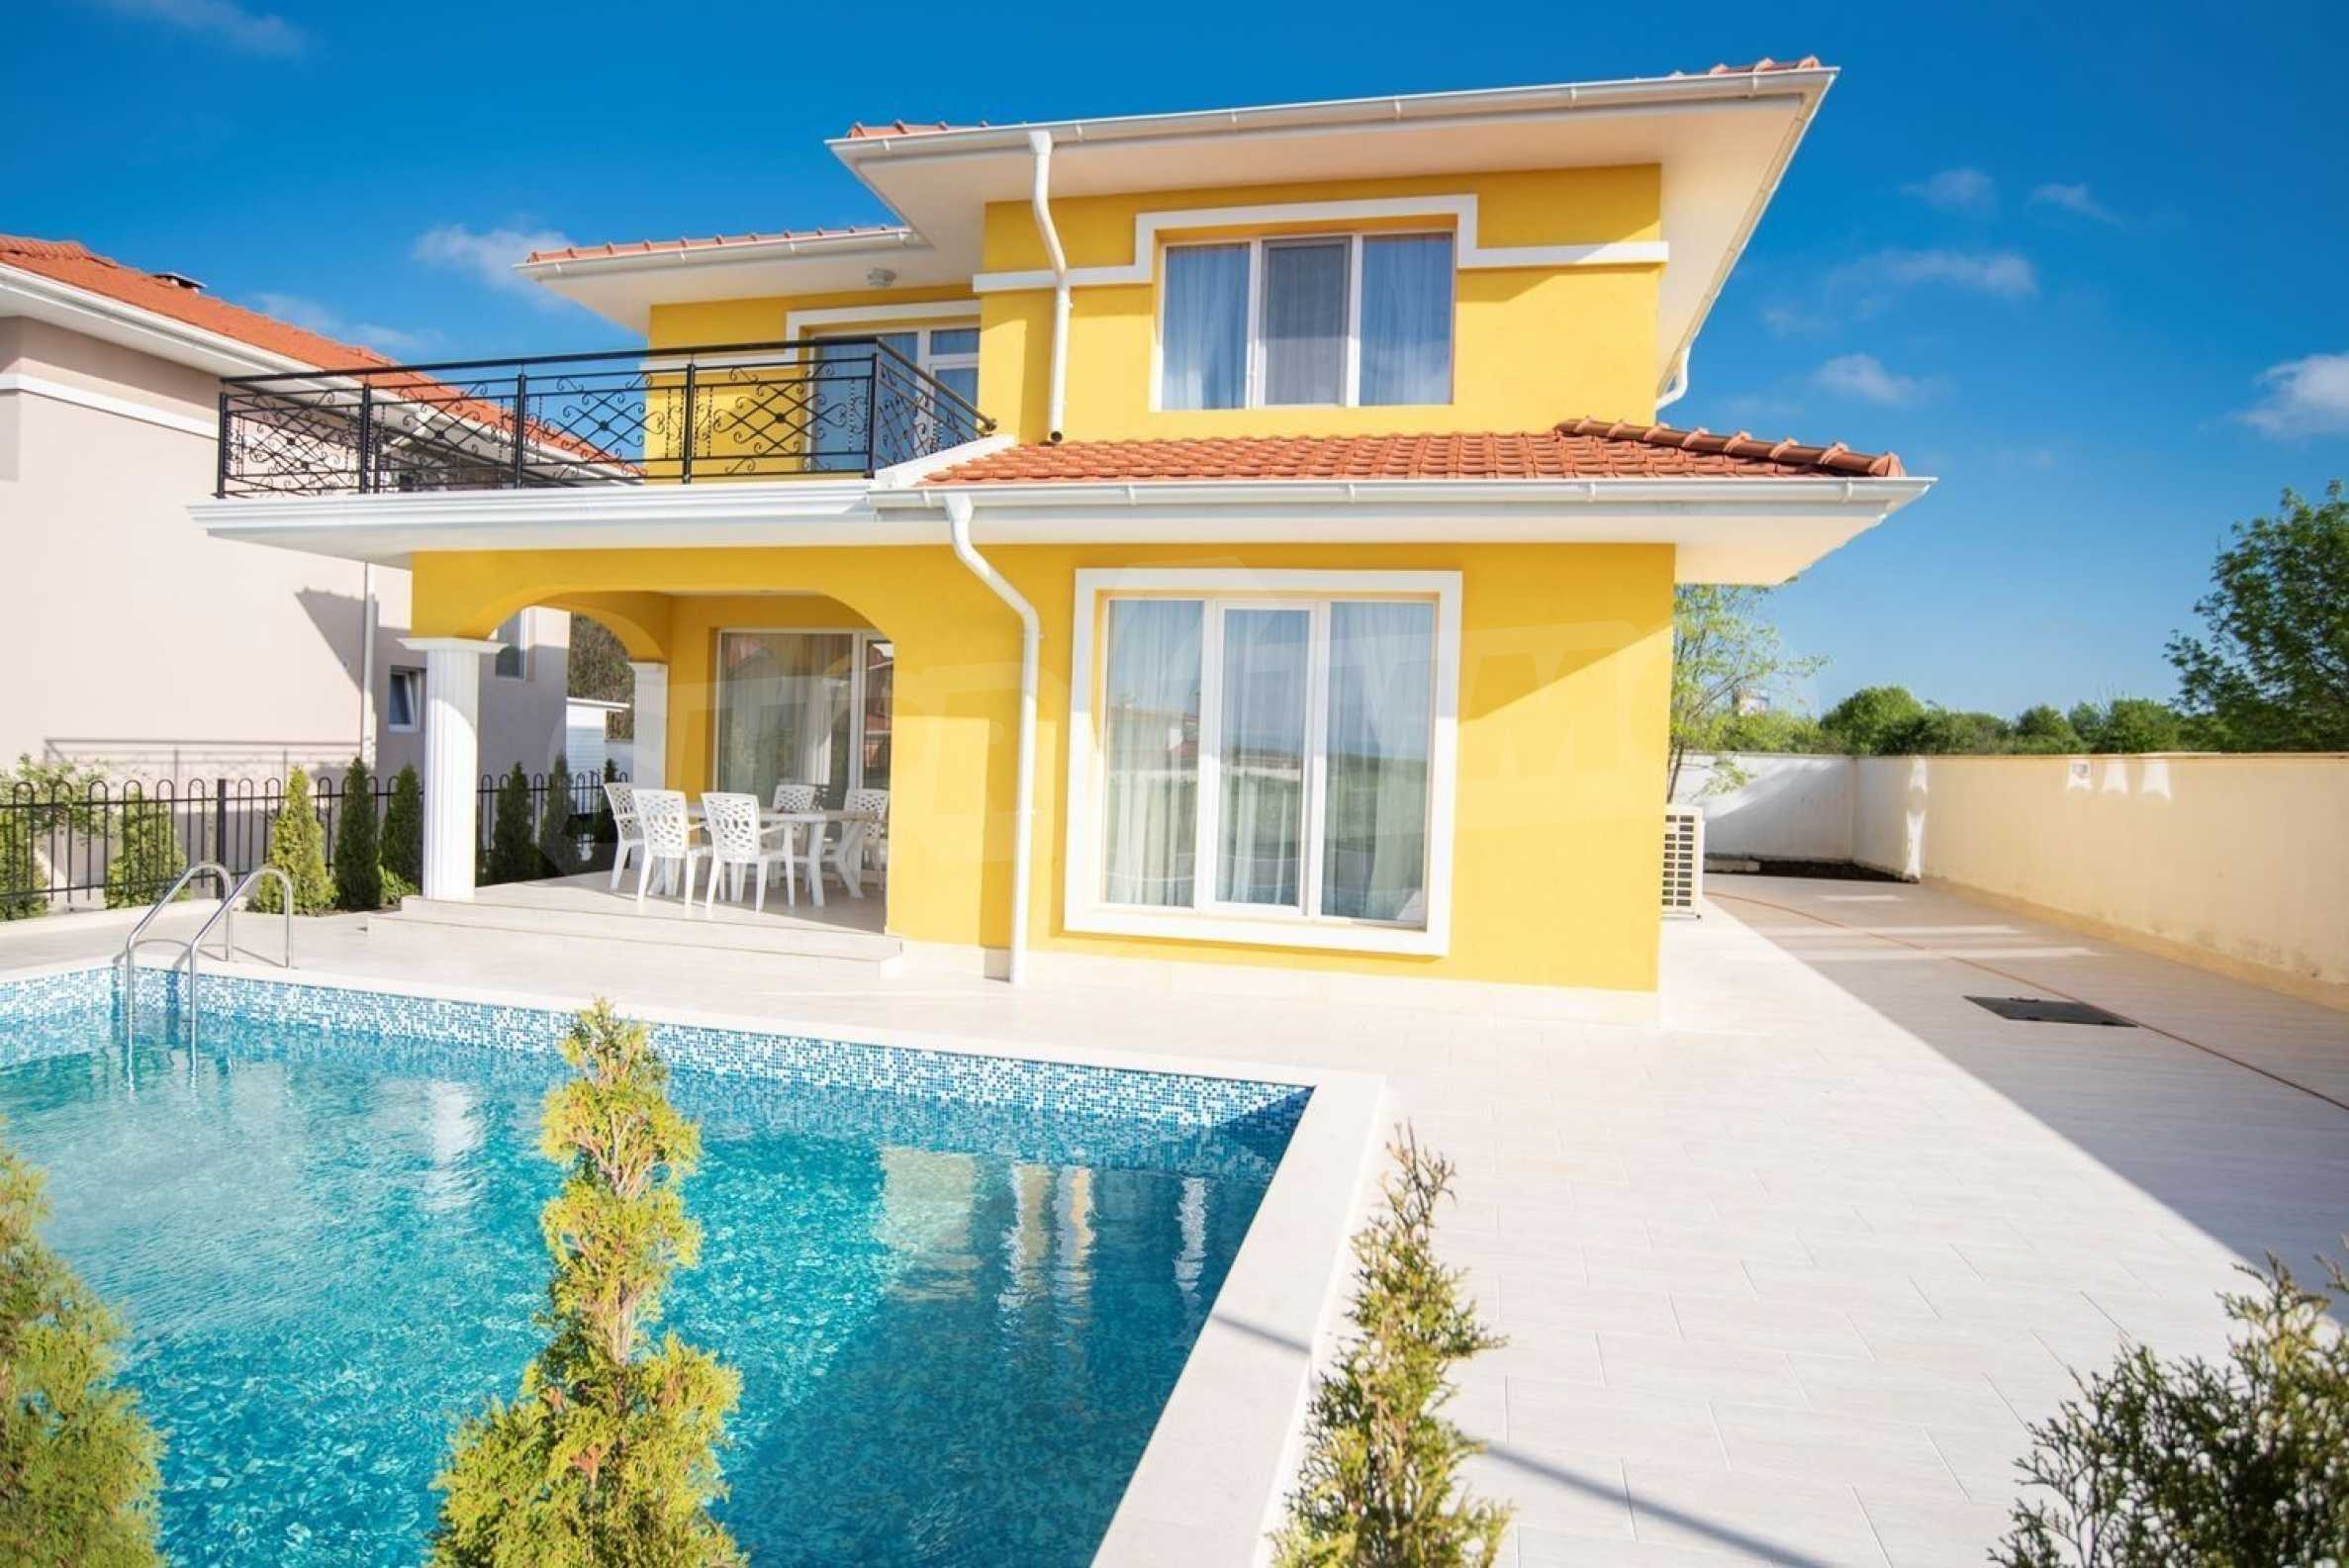 """Villa """"Charming Sun"""" - beautiful garden and pool, sea view and vintage interior 1"""